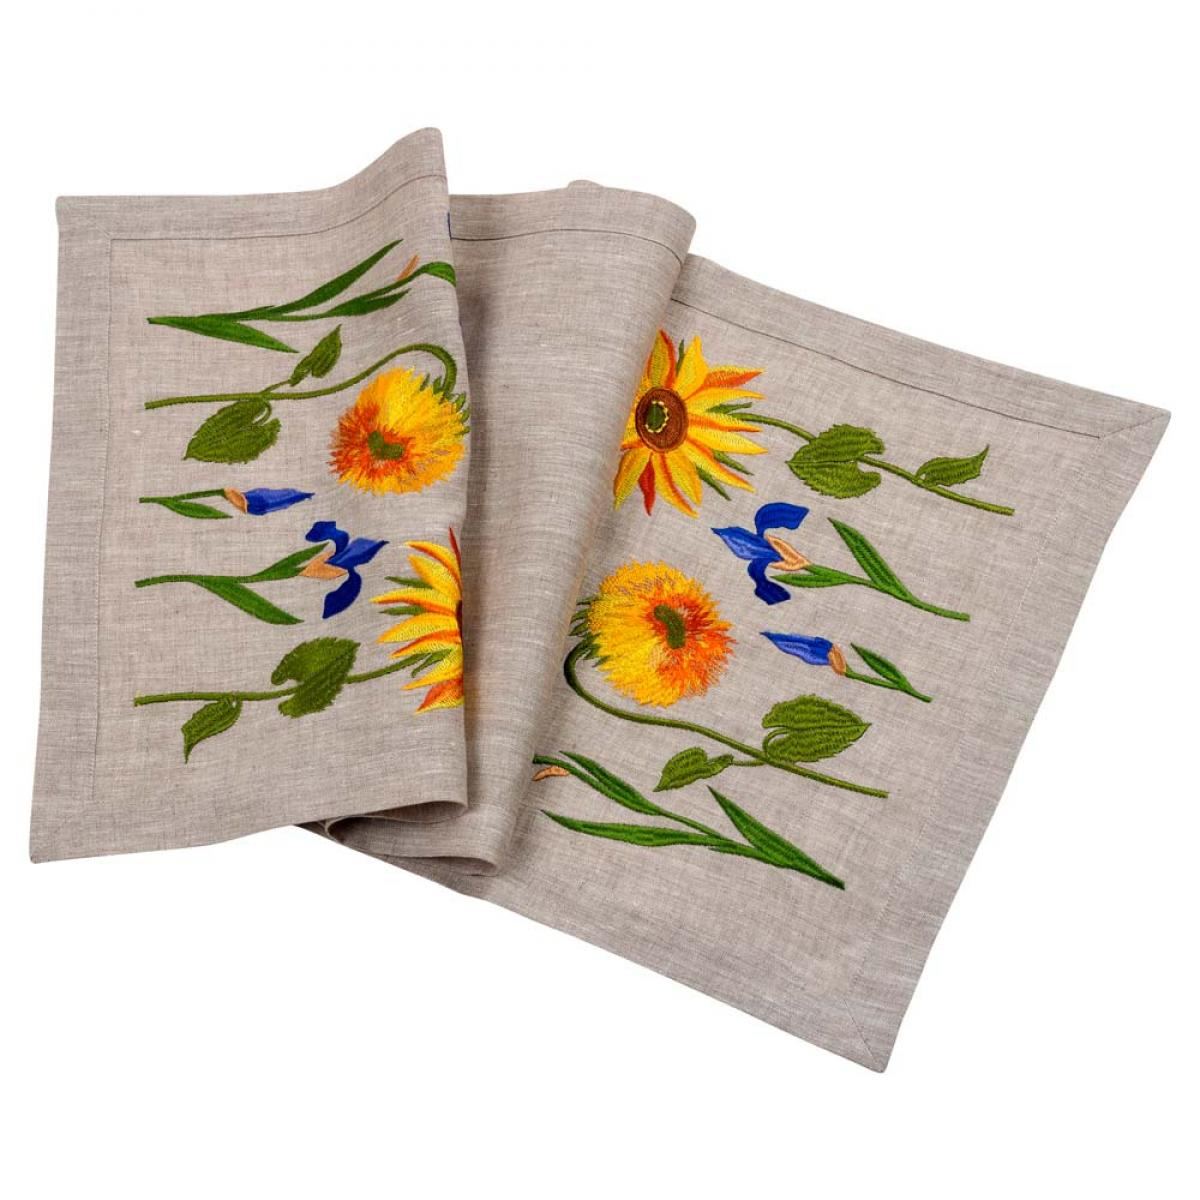 """Embroidered linen ranner for the table """"Sunflowers Van Gogh"""" 90x40 cm - buy Kyiv"""